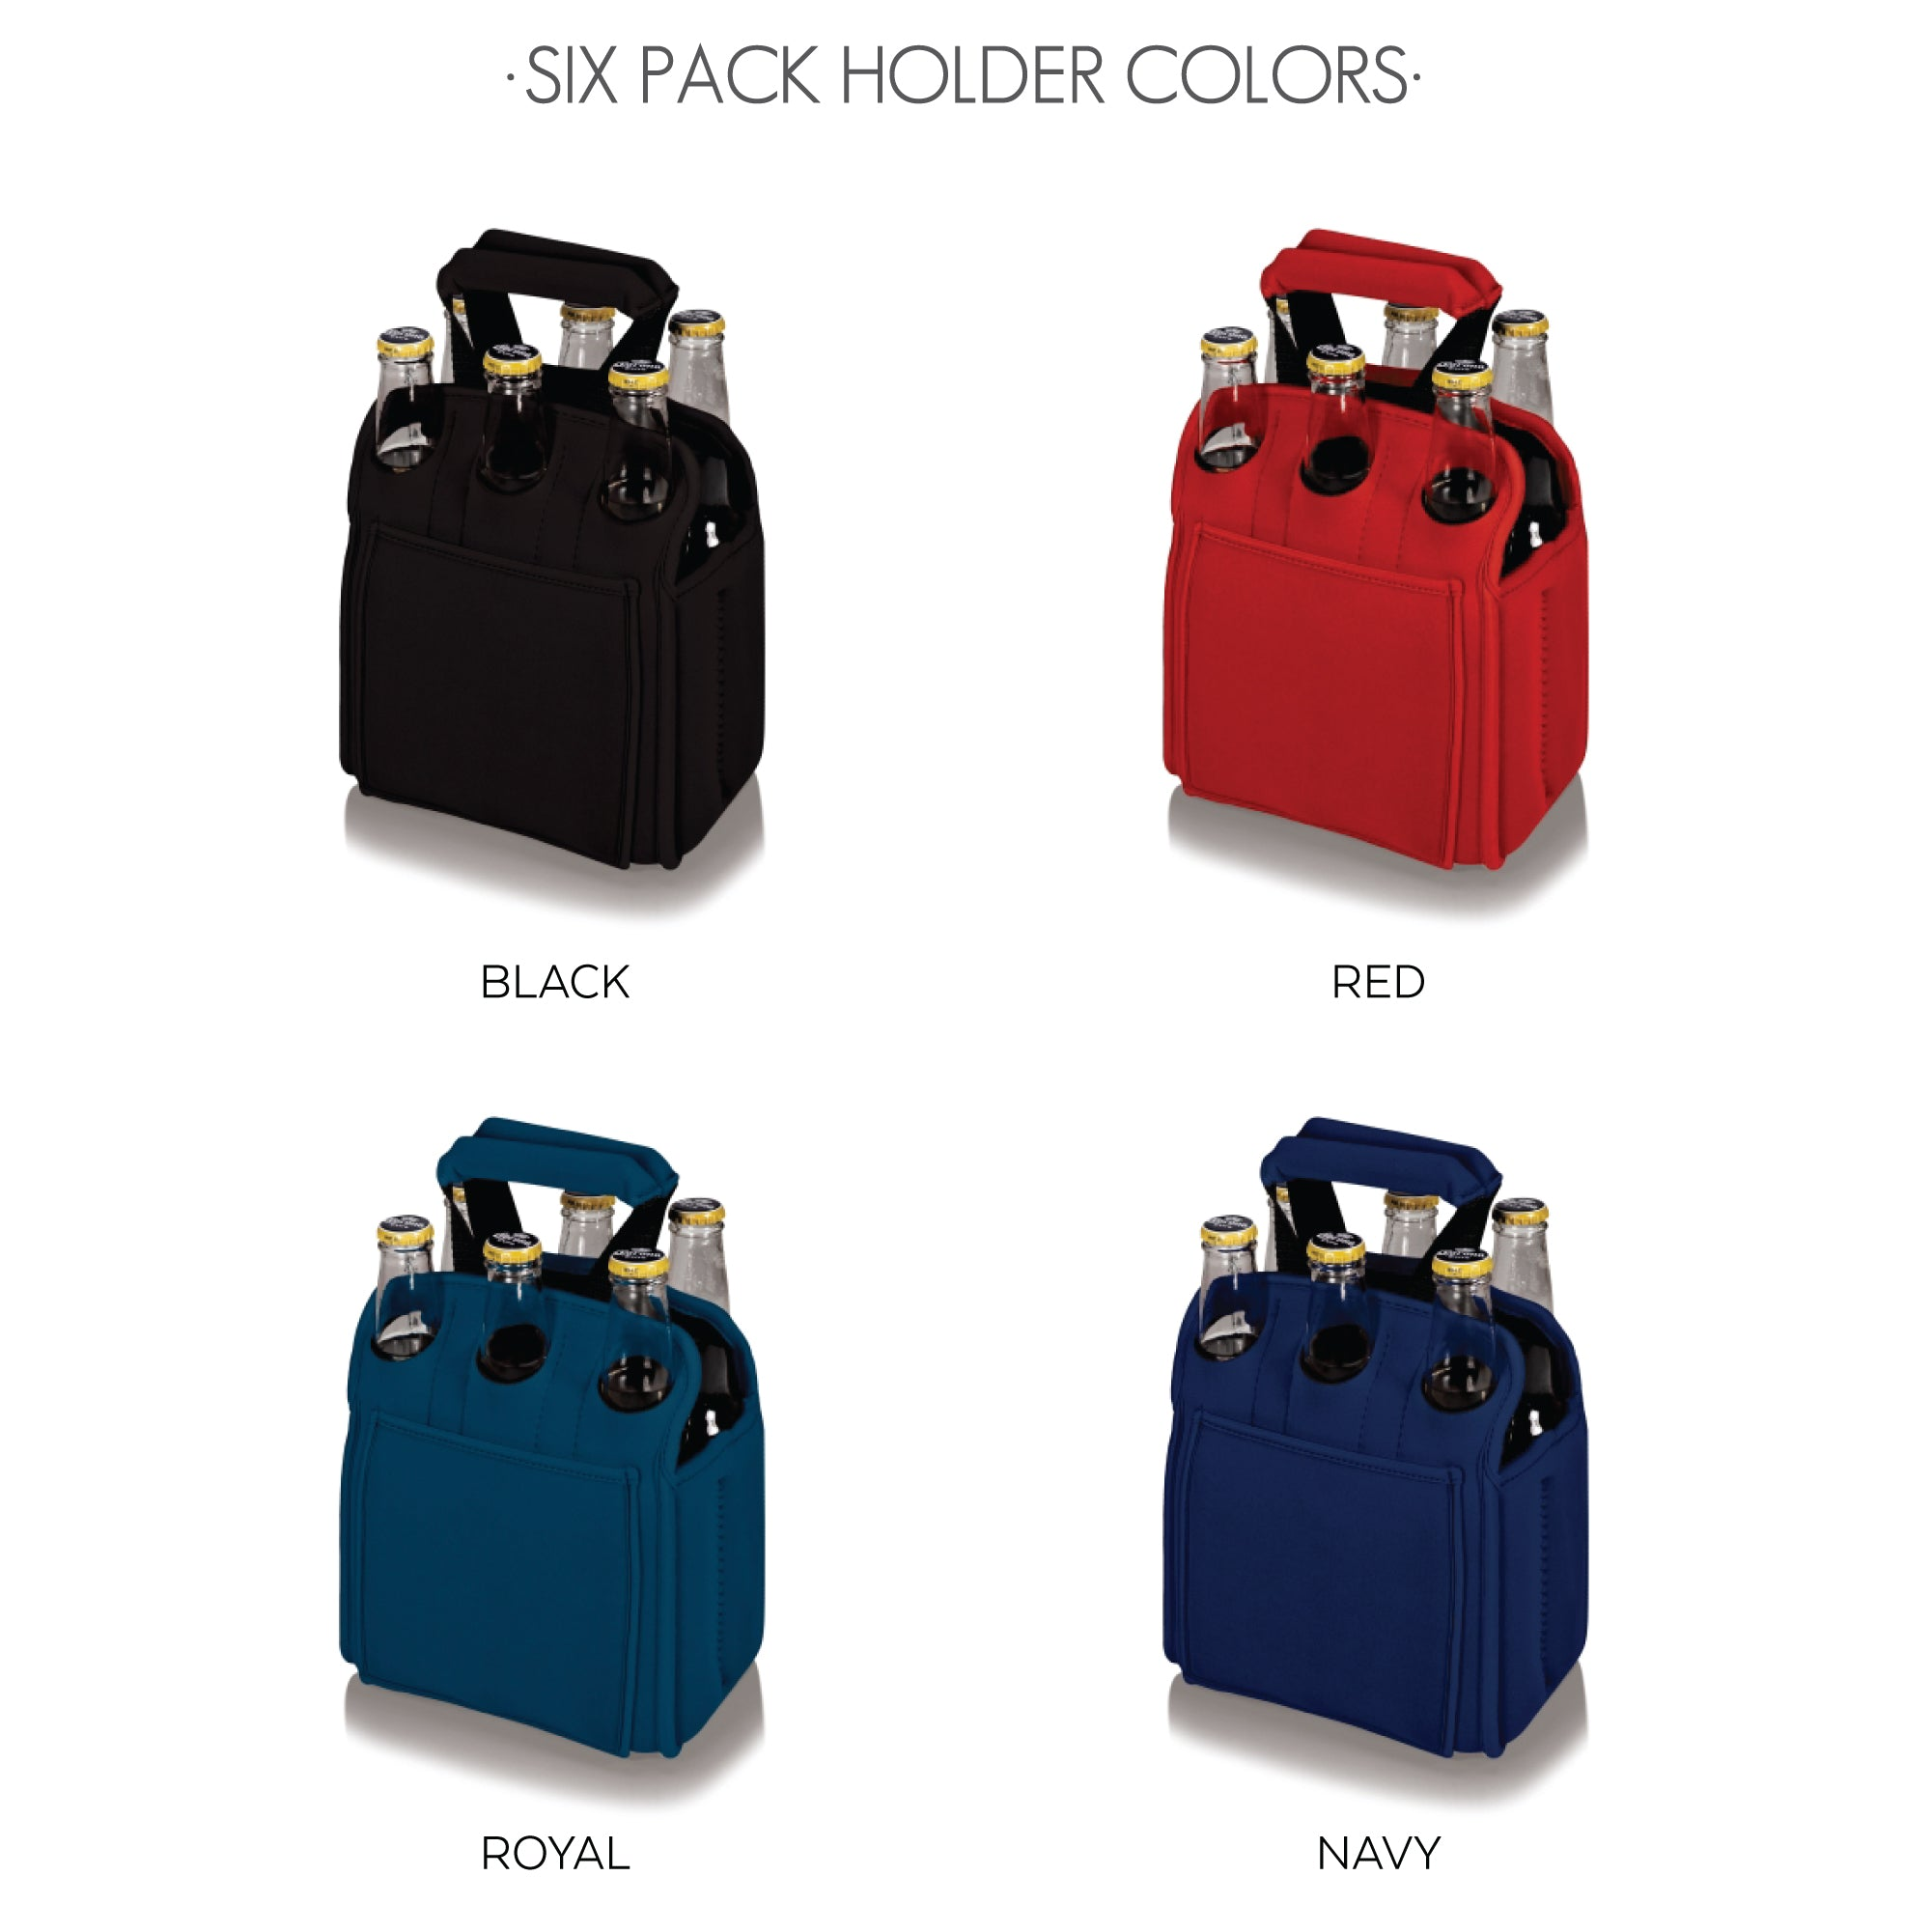 SIX PACK HOLDER COLORS